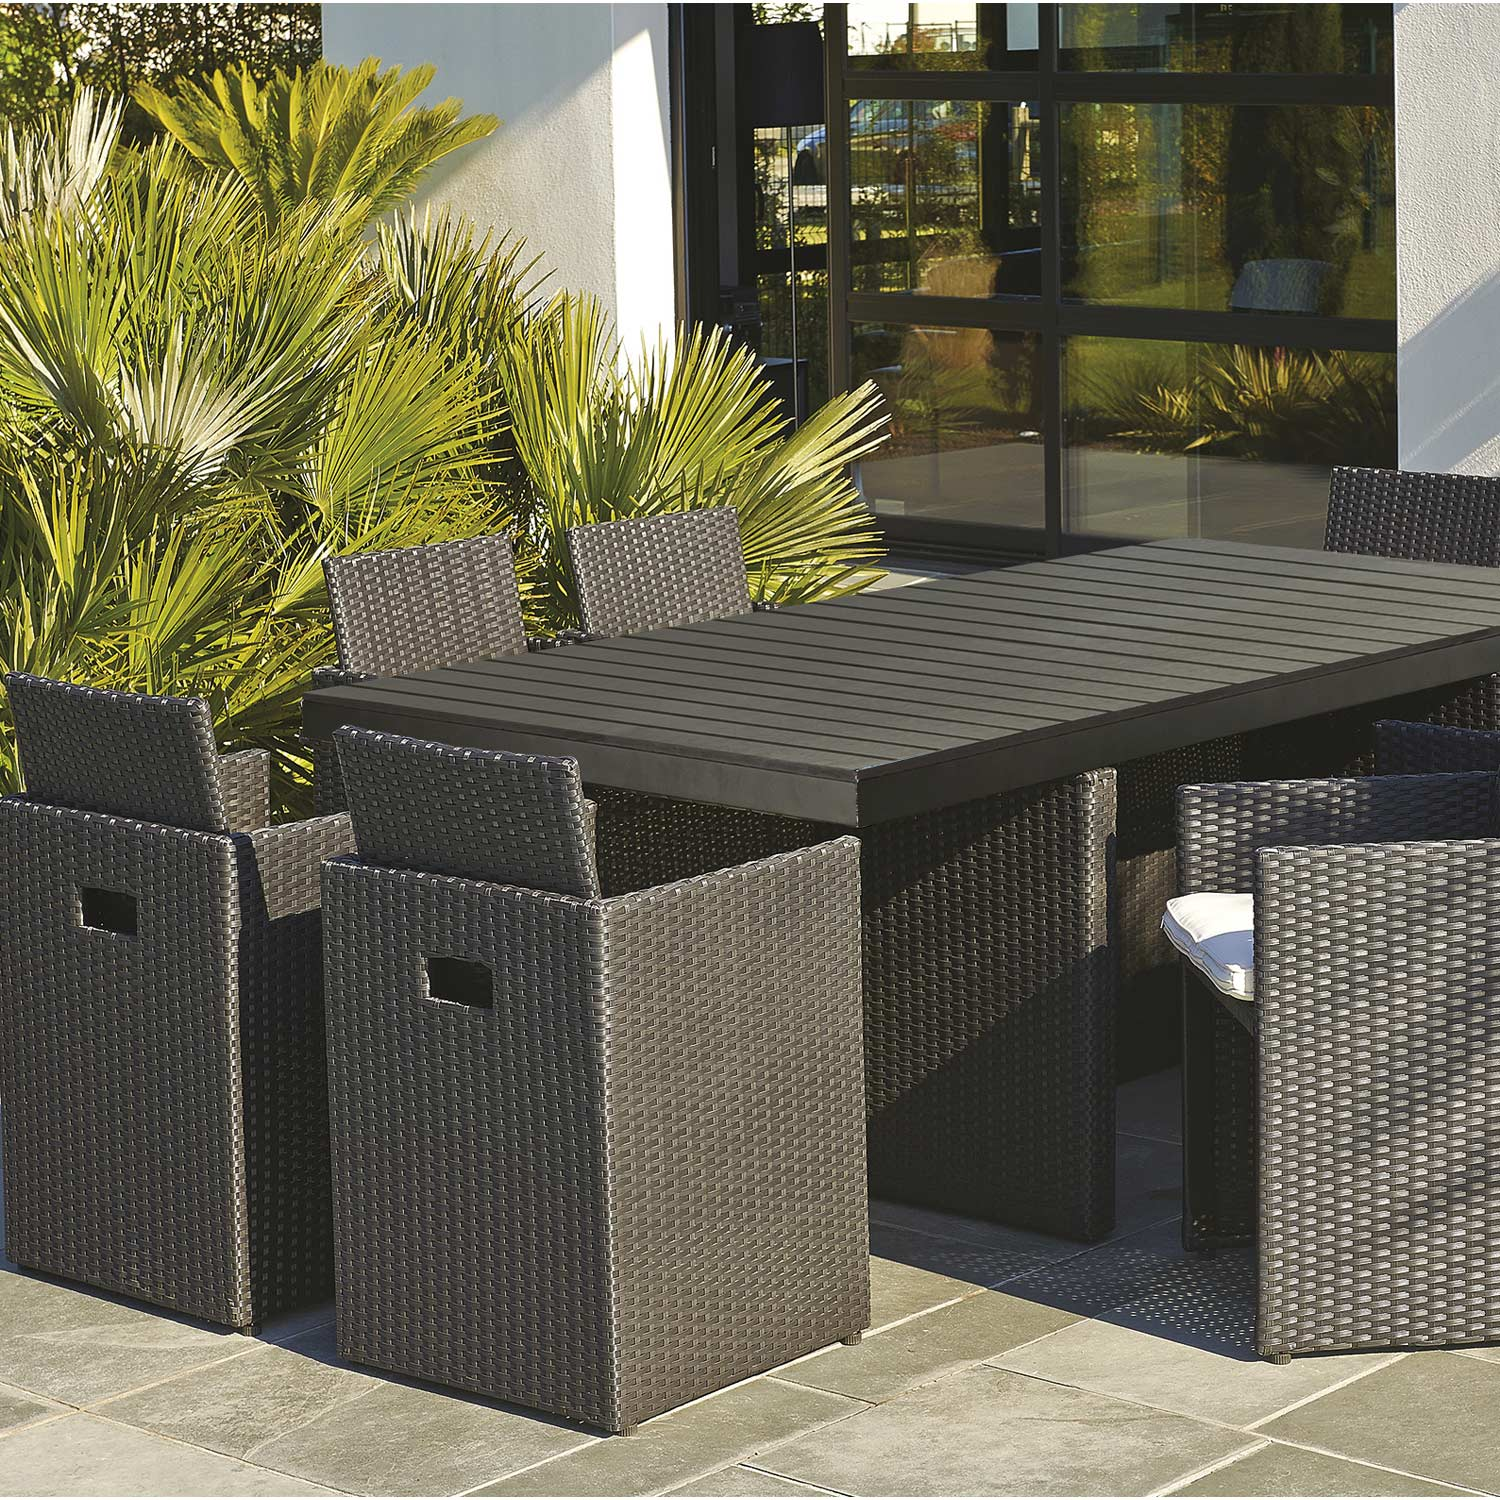 salon de jardin encastrable r sine tress e noir 8 personnes leroy merlin. Black Bedroom Furniture Sets. Home Design Ideas